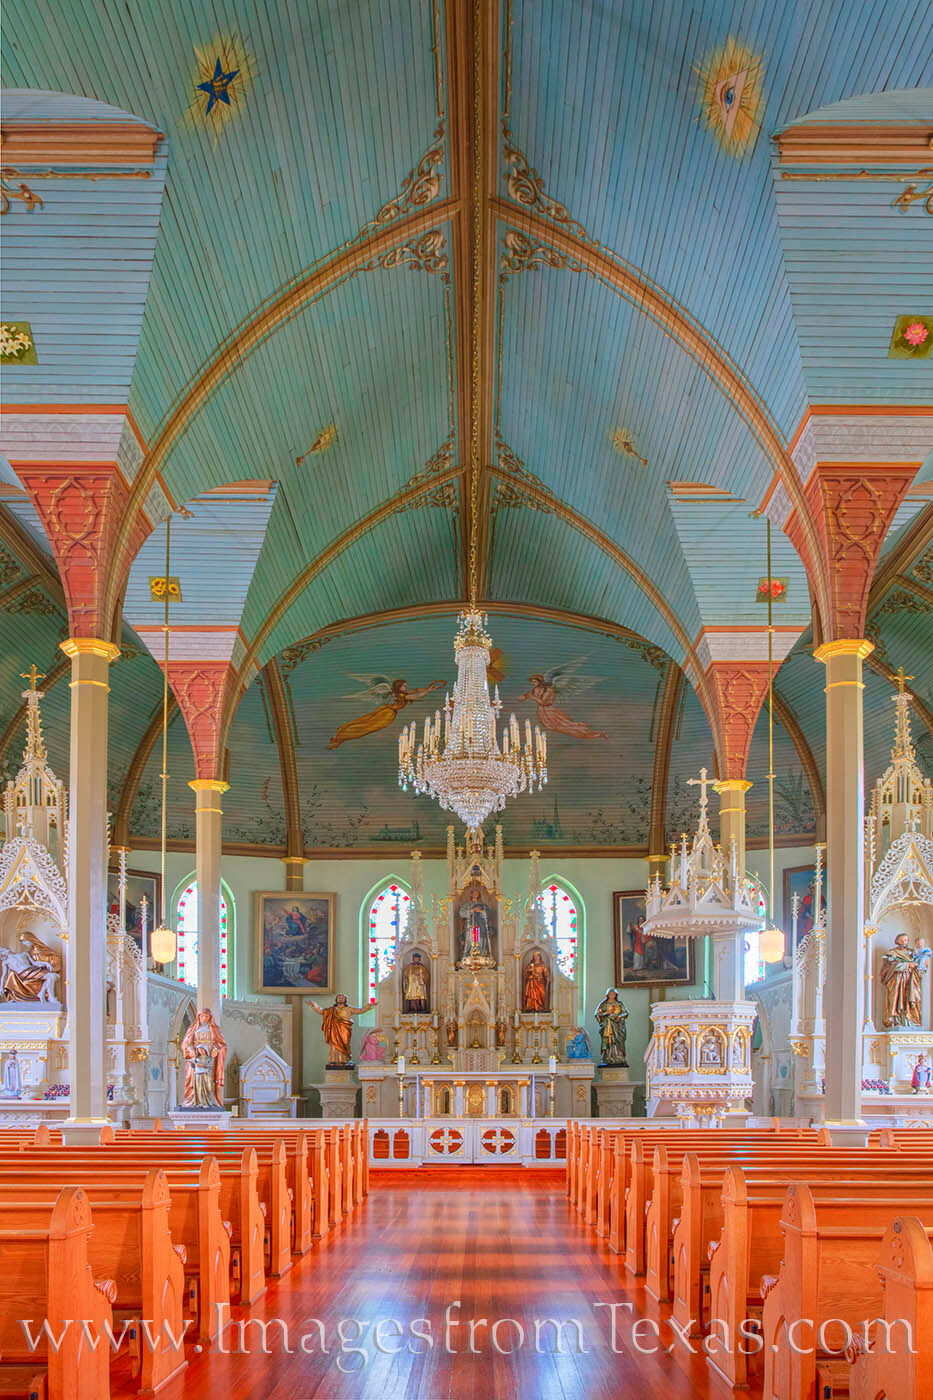 St. Mary's Church of the Assumption is one of the famous Painted Churches of Texas. Found in Fayette County east of the Hill...